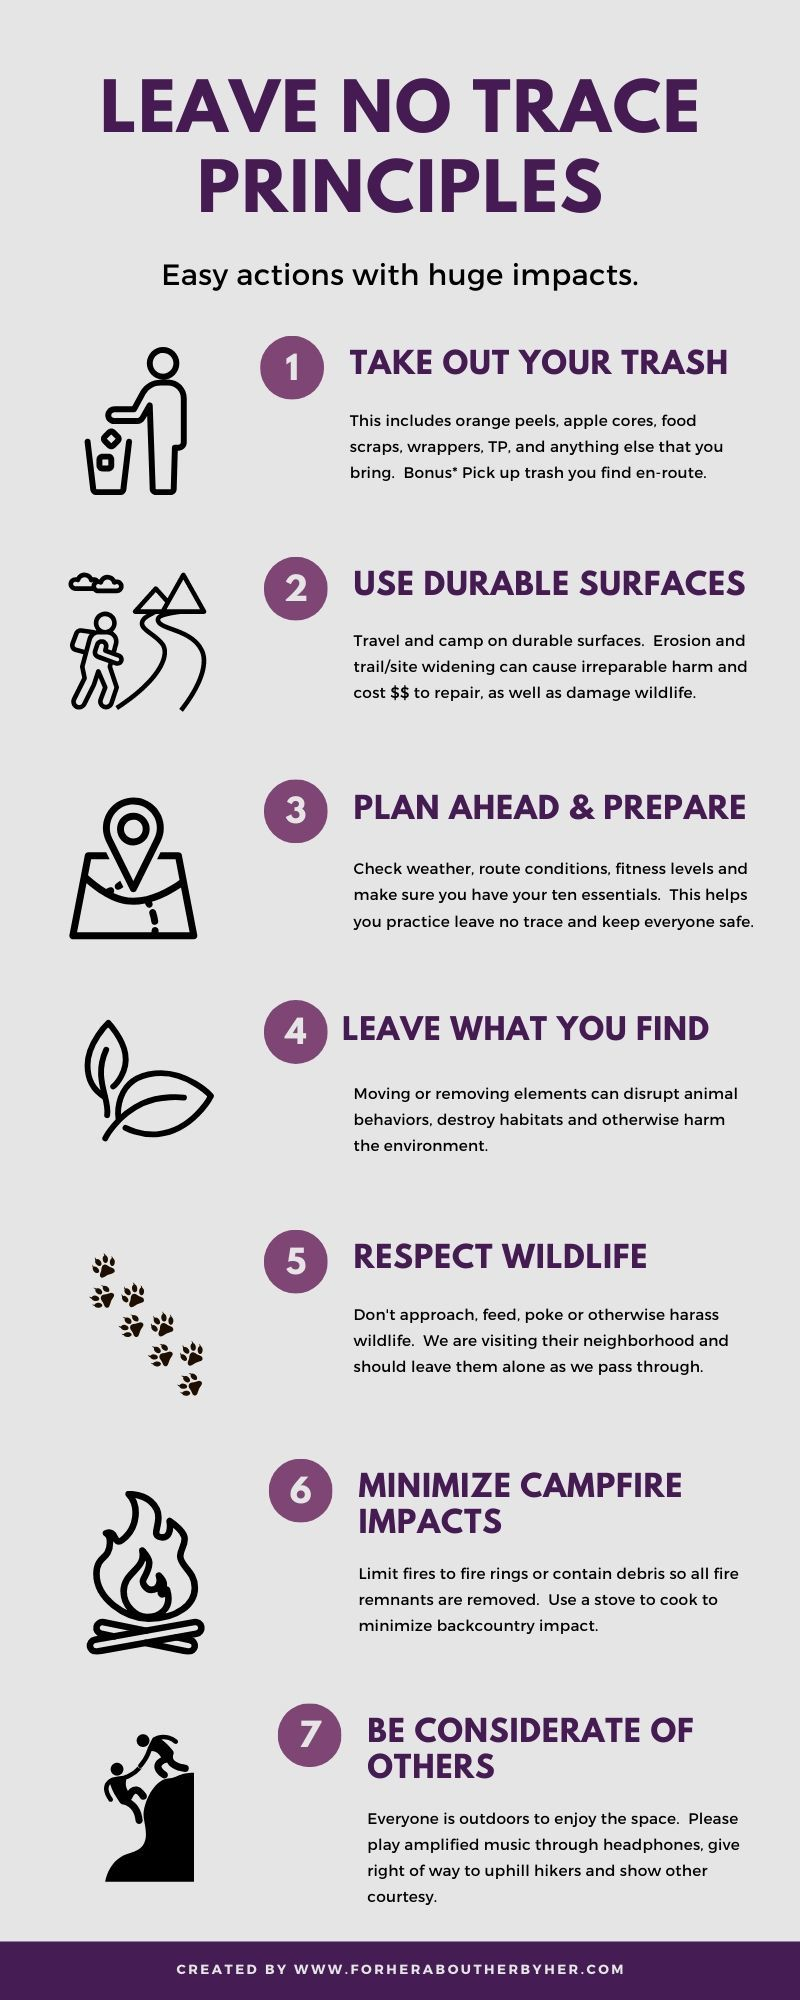 take out your trash, use durable surfaces, plan ahead & prepare, leave what you find, respect wildlife, minimize campfire impacts, be considerate of others